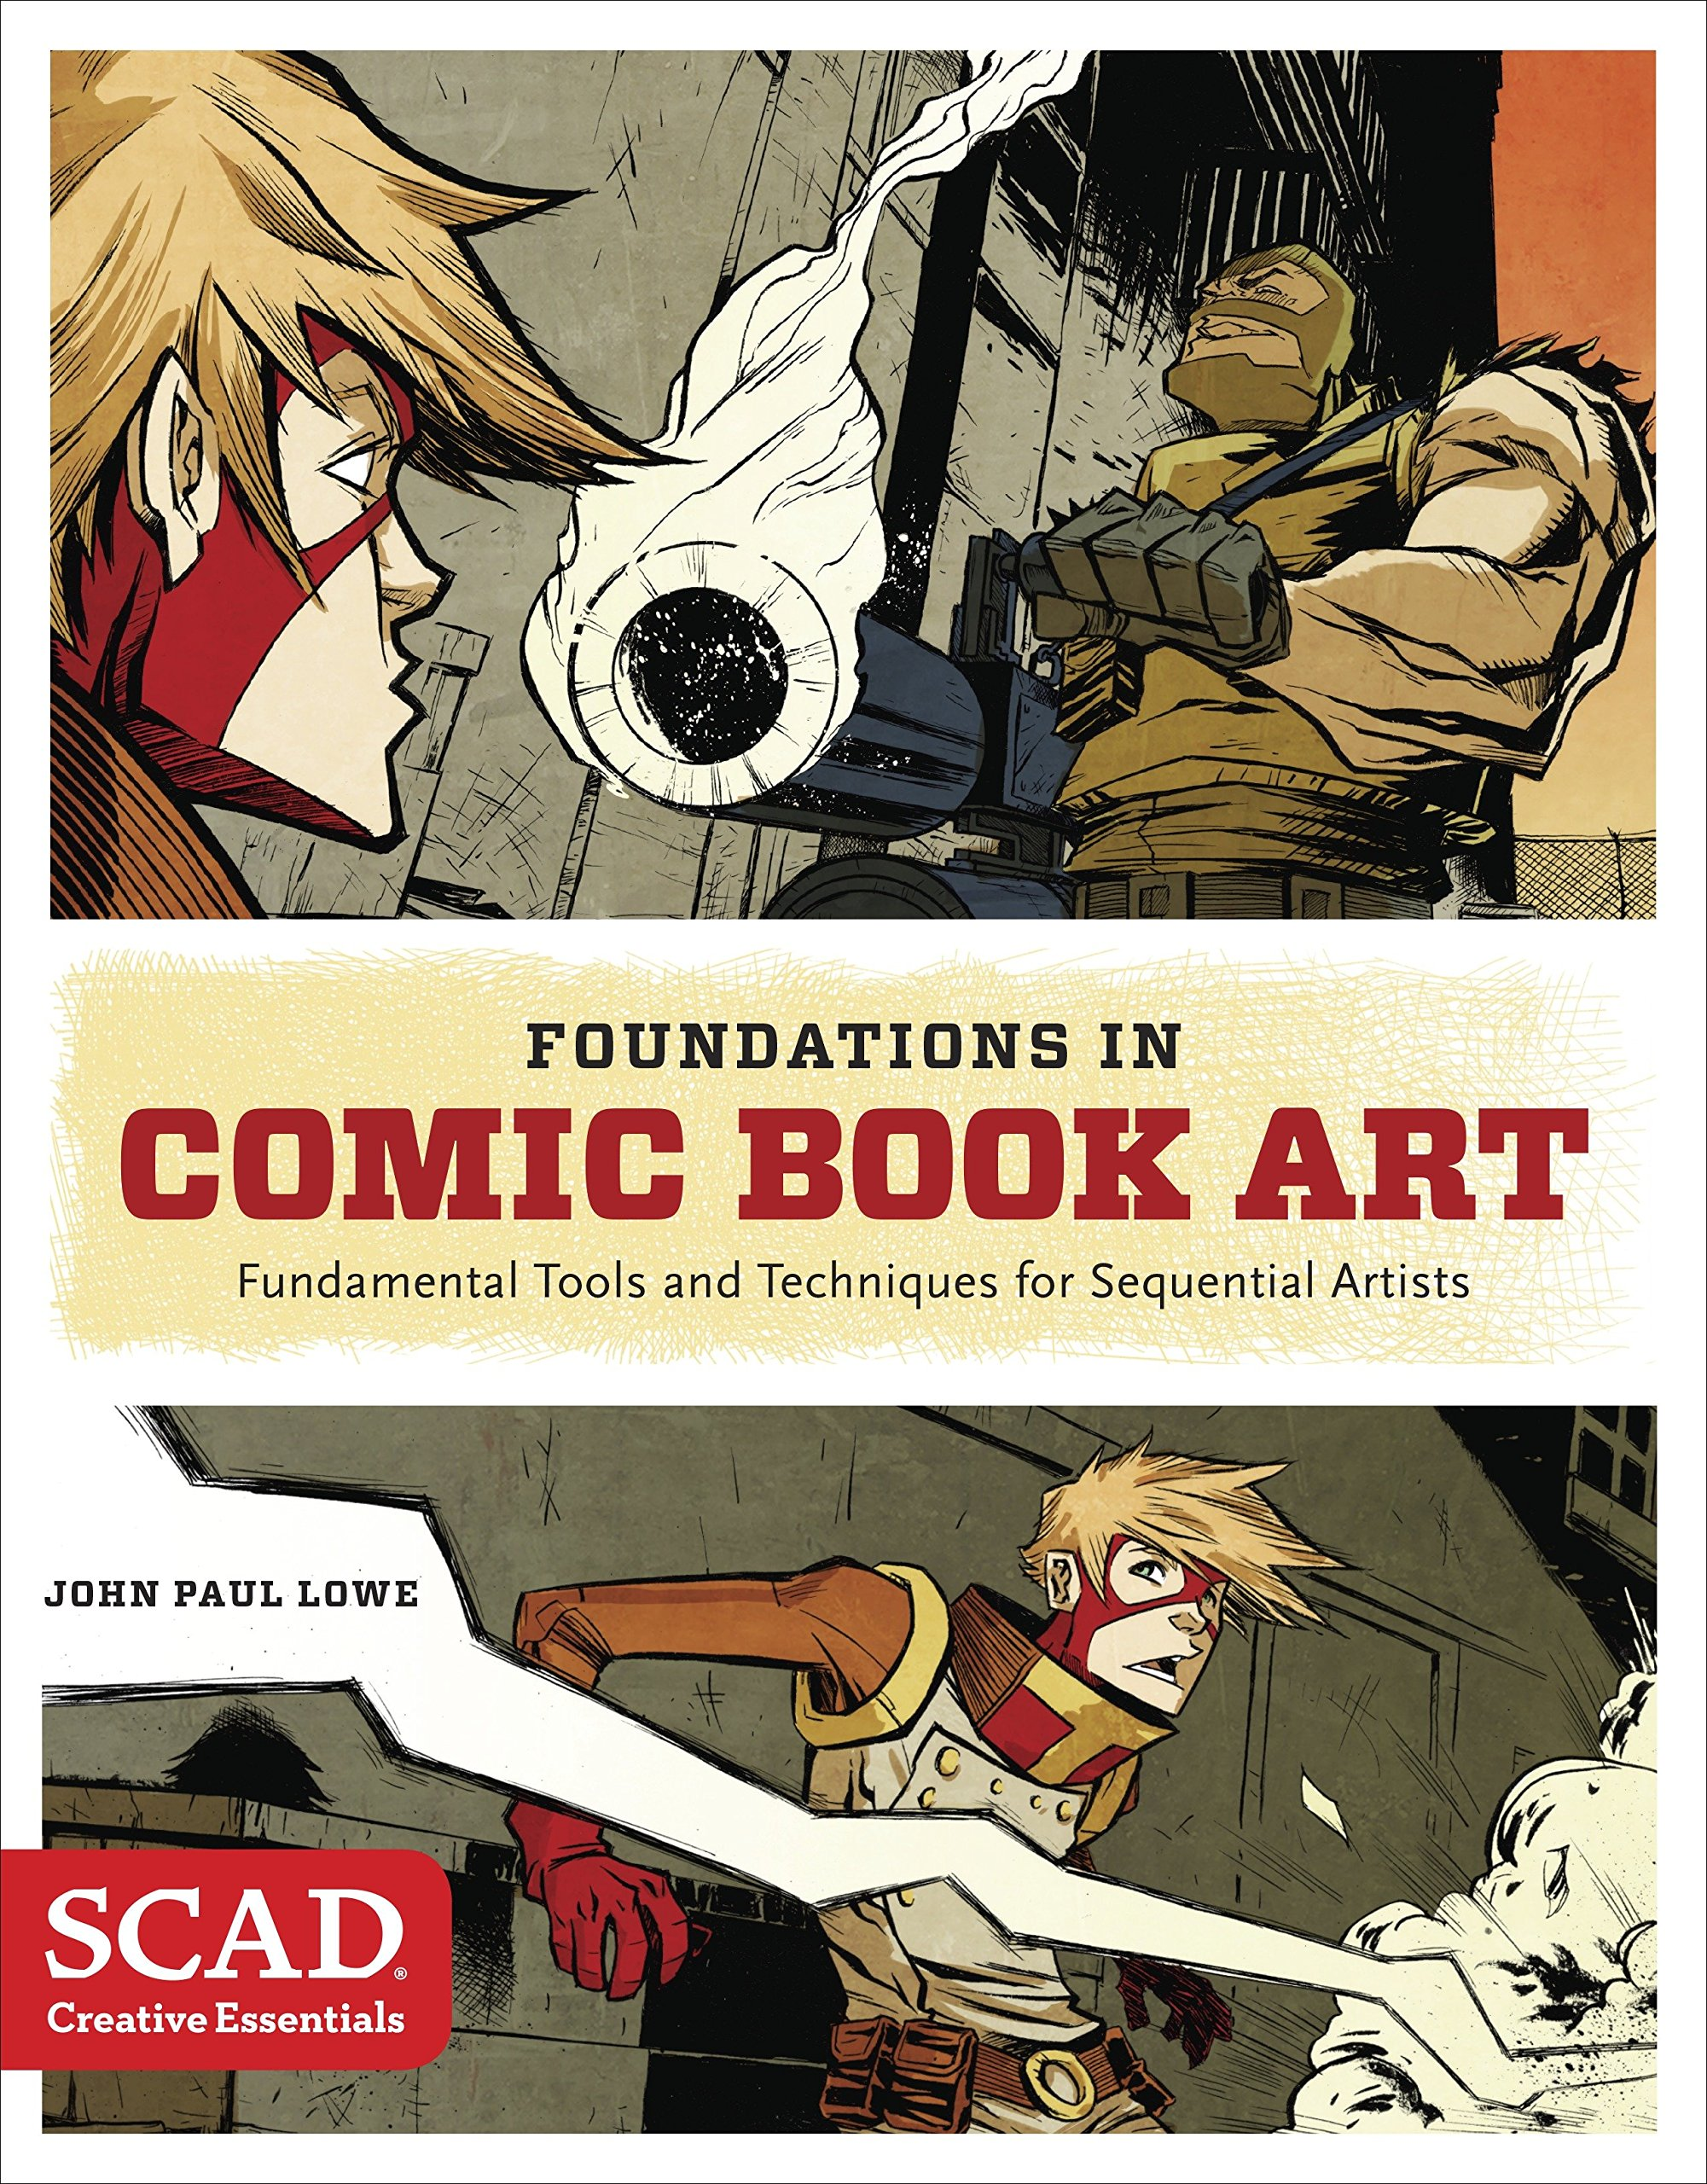 Foundations in Comic Book Art: SCAD Creative Essentials (Fundamental Tools and Techniques for Sequential Artists) by WATSON-GUPTILL